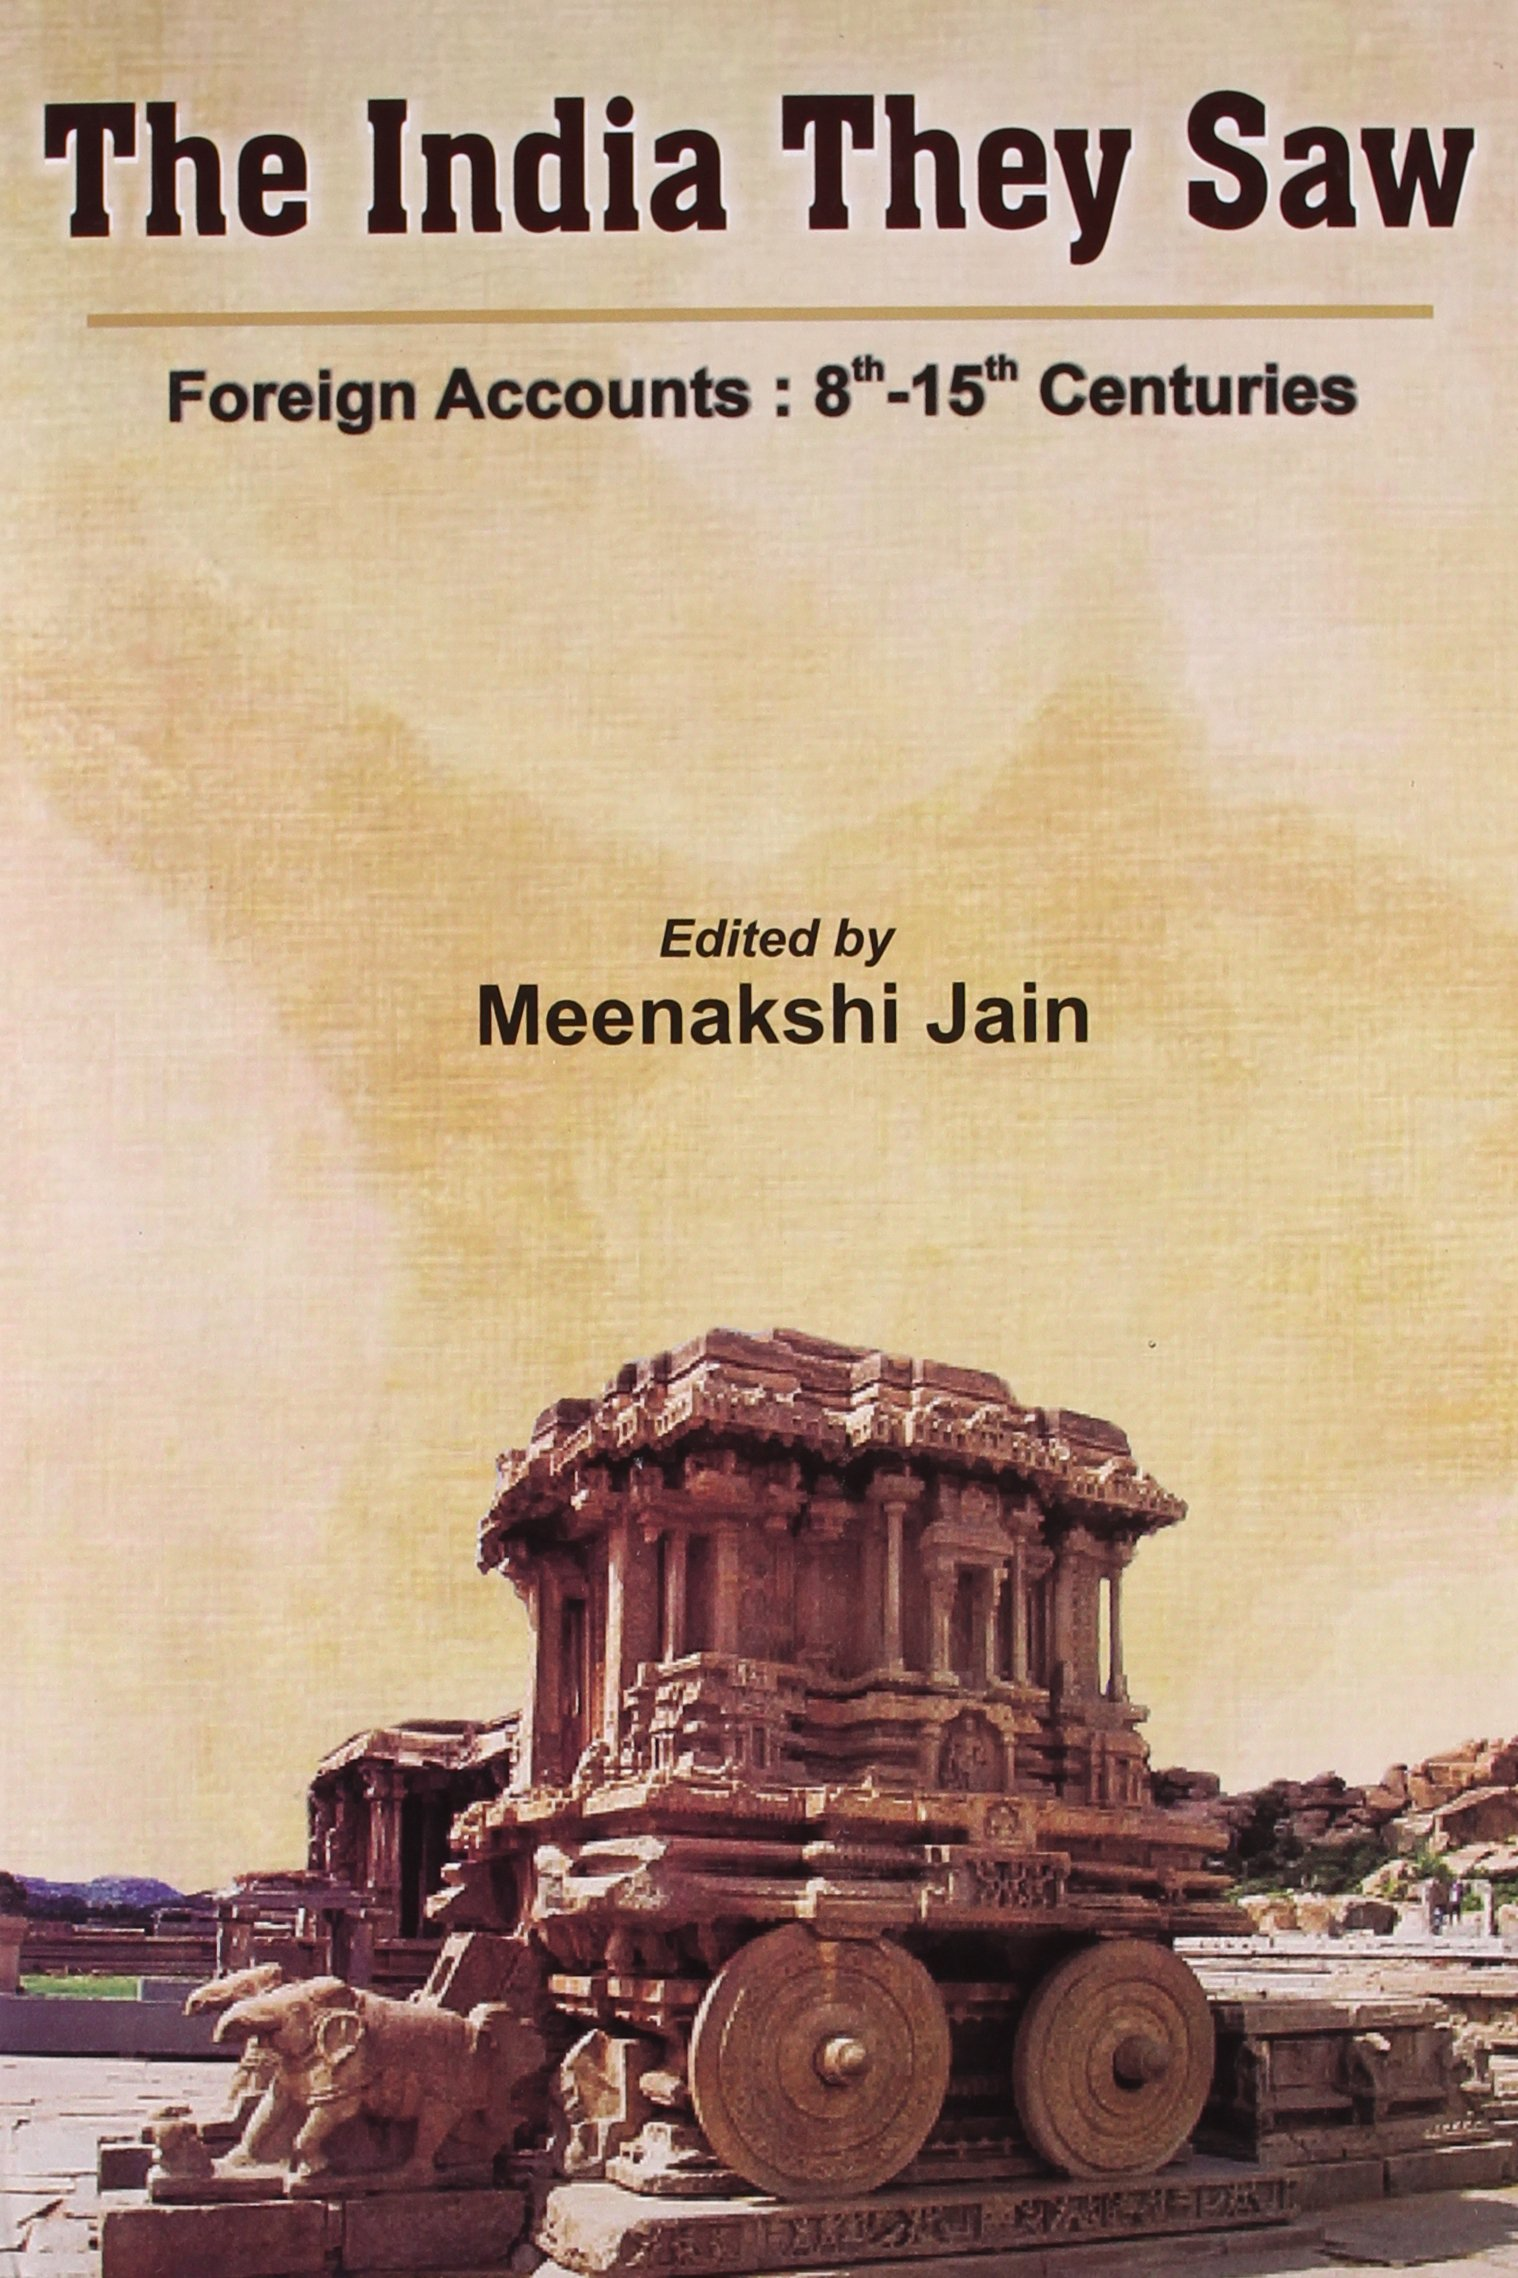 The India They Saw Vol. 2 (Foreign Accounts : 8th - 15th Centuries) pdf epub